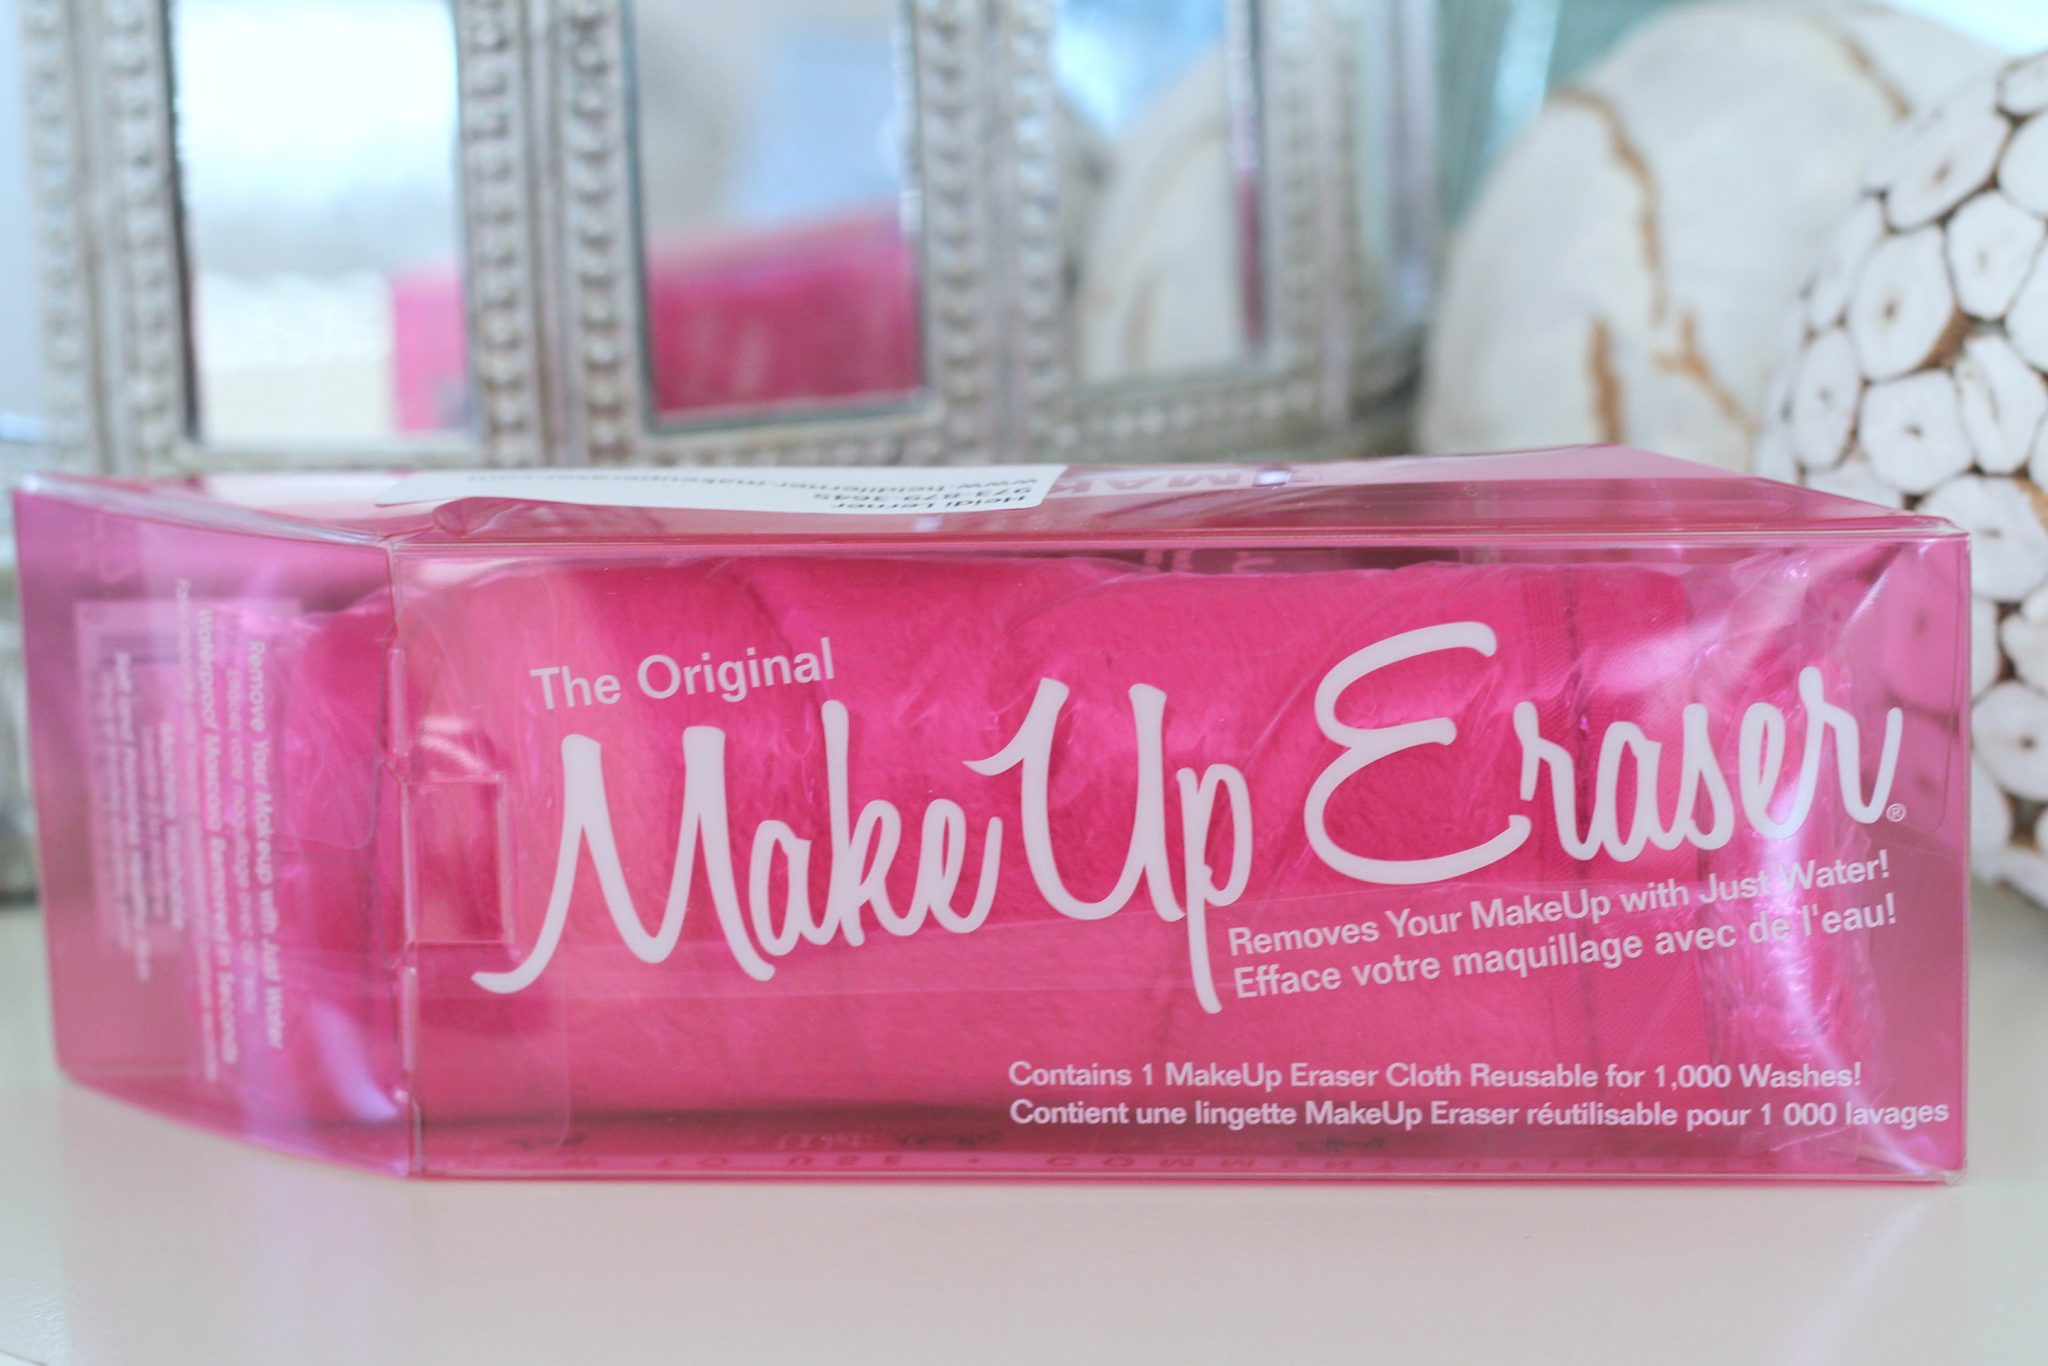 Remove your makeup with just water with the all natural Makeup Eraser! graphic